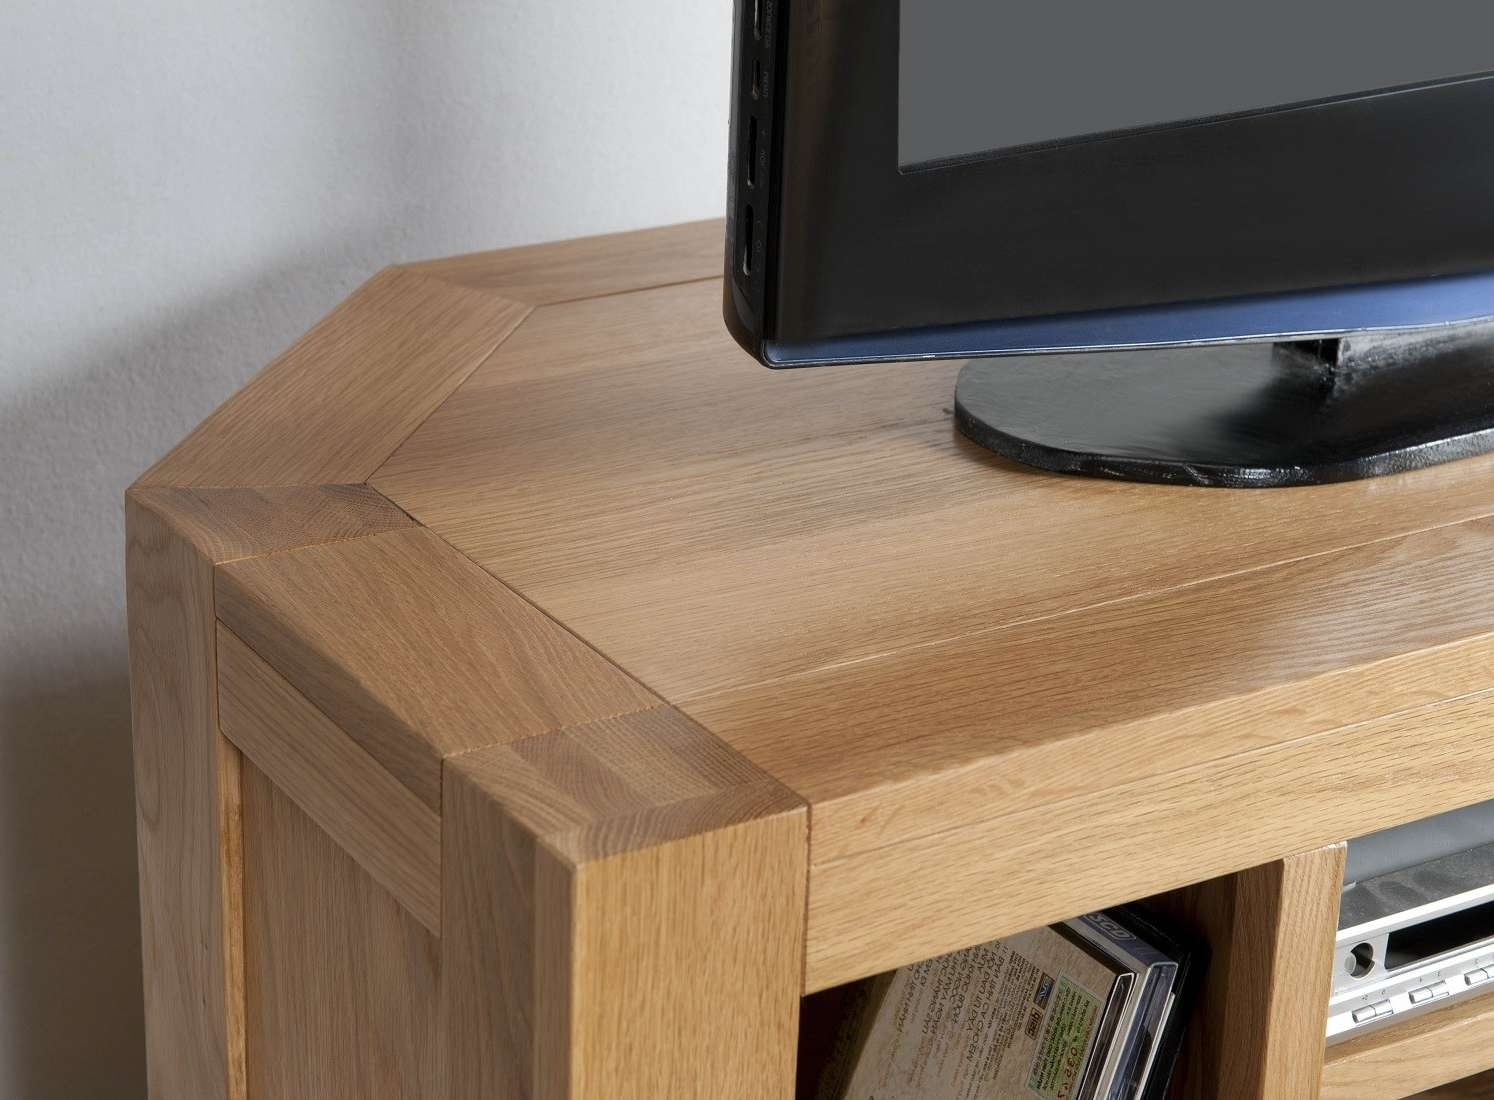 Aylesbury Contemporary Light Oak Corner Tv Unit | Oak Furniture Uk Pertaining To Contemporary Oak Tv Stands (View 10 of 15)